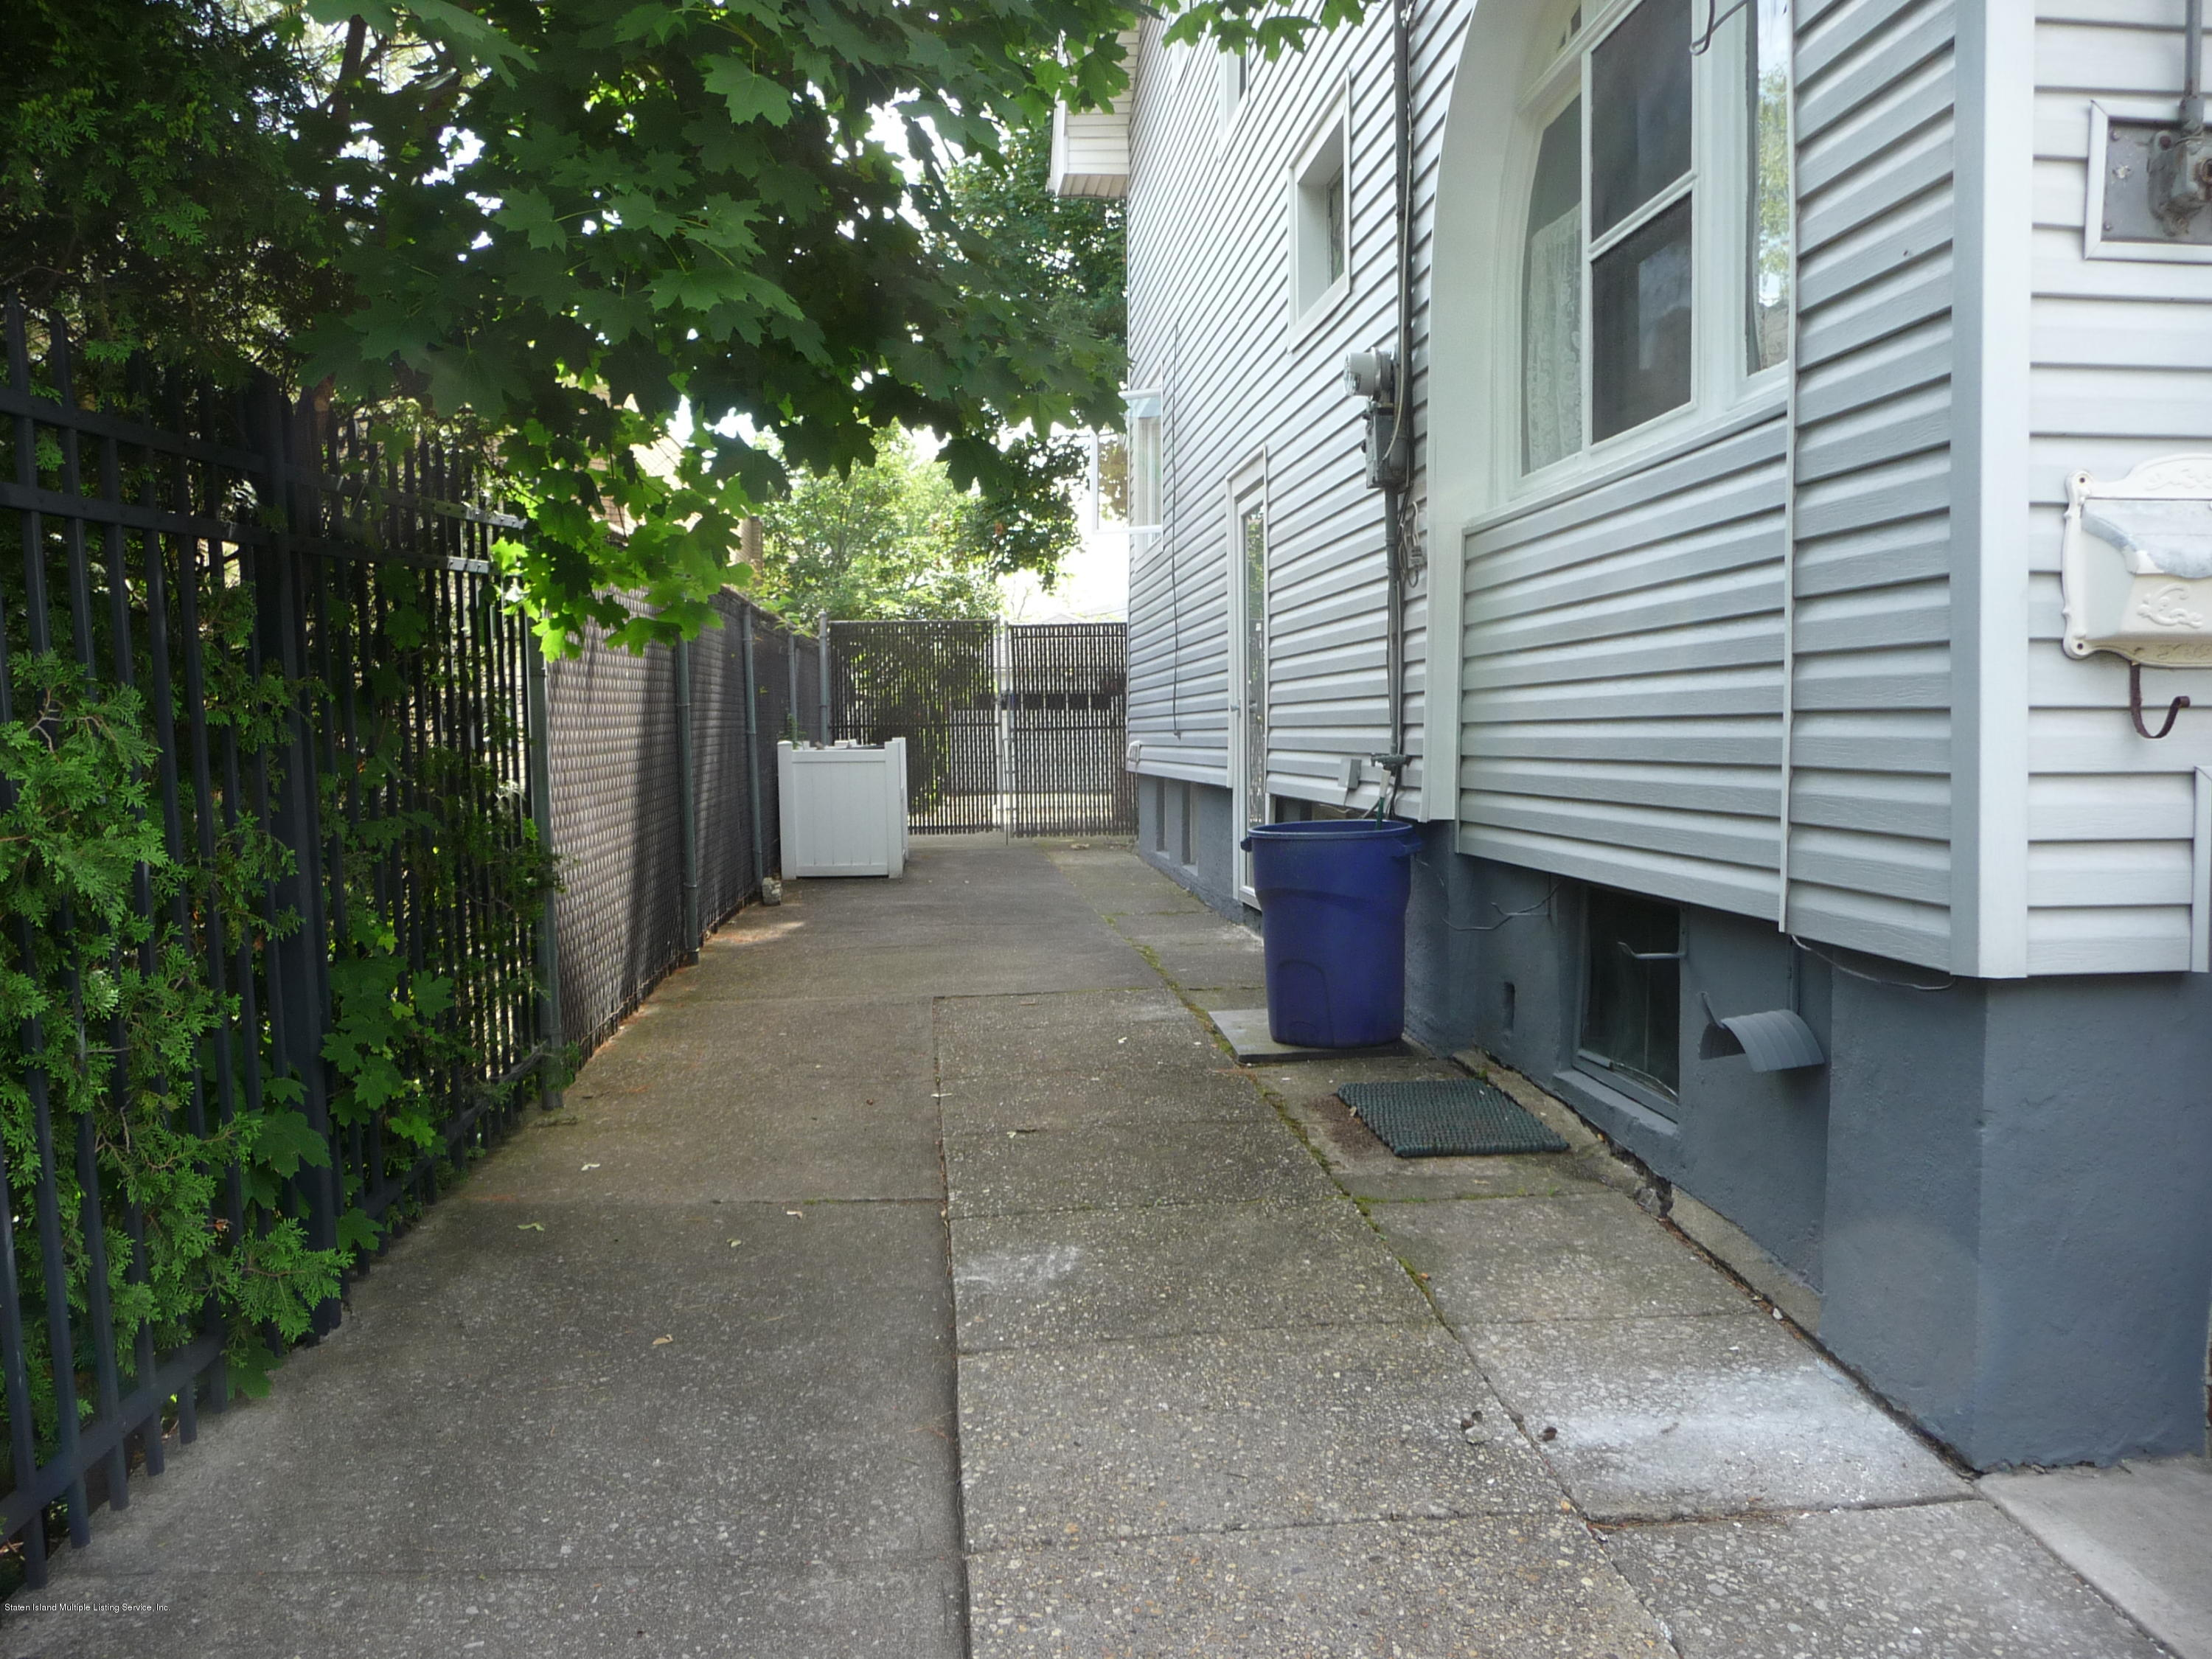 Single Family - Detached 77 Todt Hill Road  Staten Island, NY 10314, MLS-1129718-54